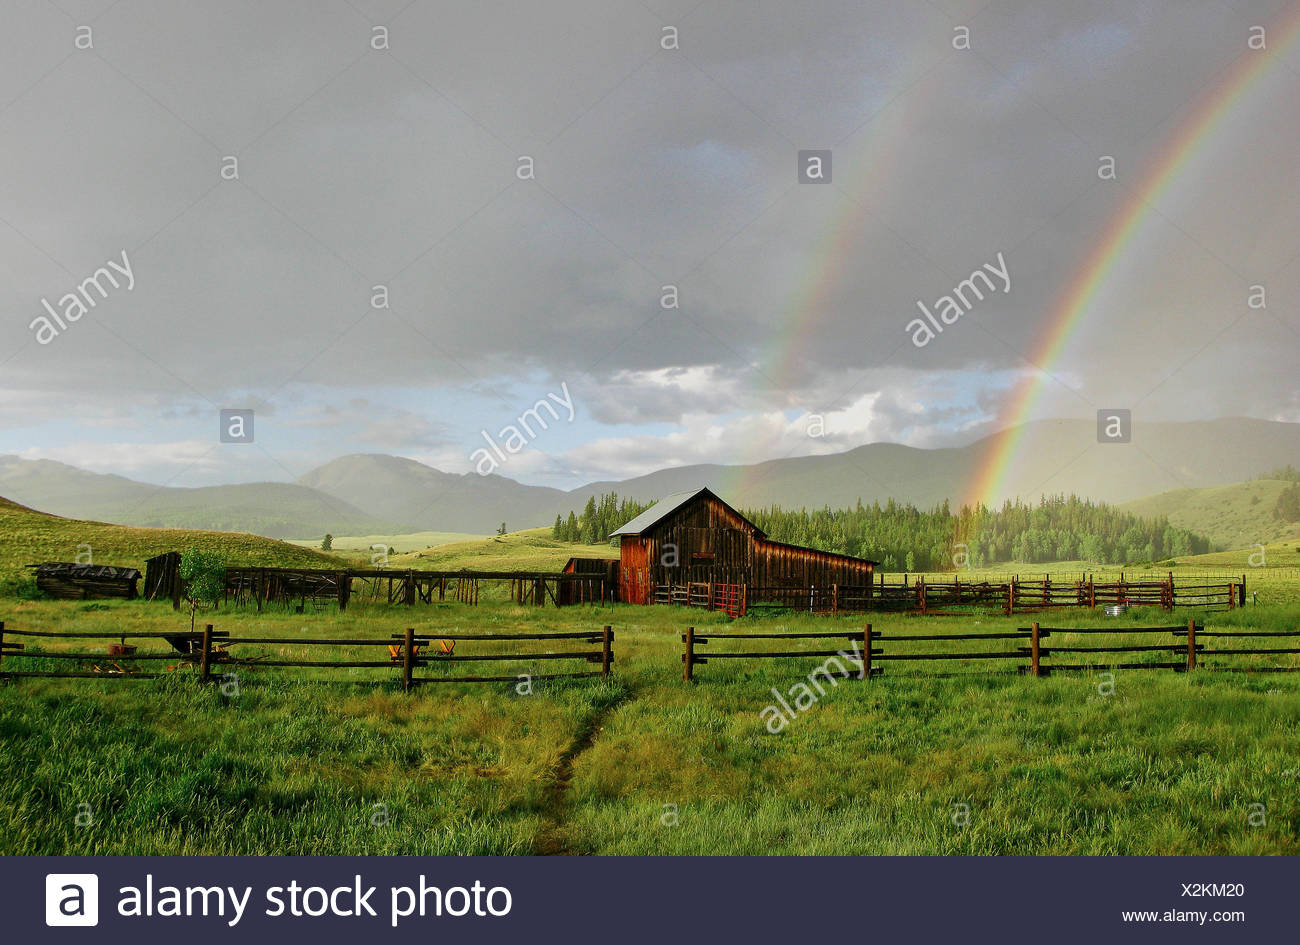 Old barn and rainbow after rainstorm, Creed, Colorado, USA - Stock Image